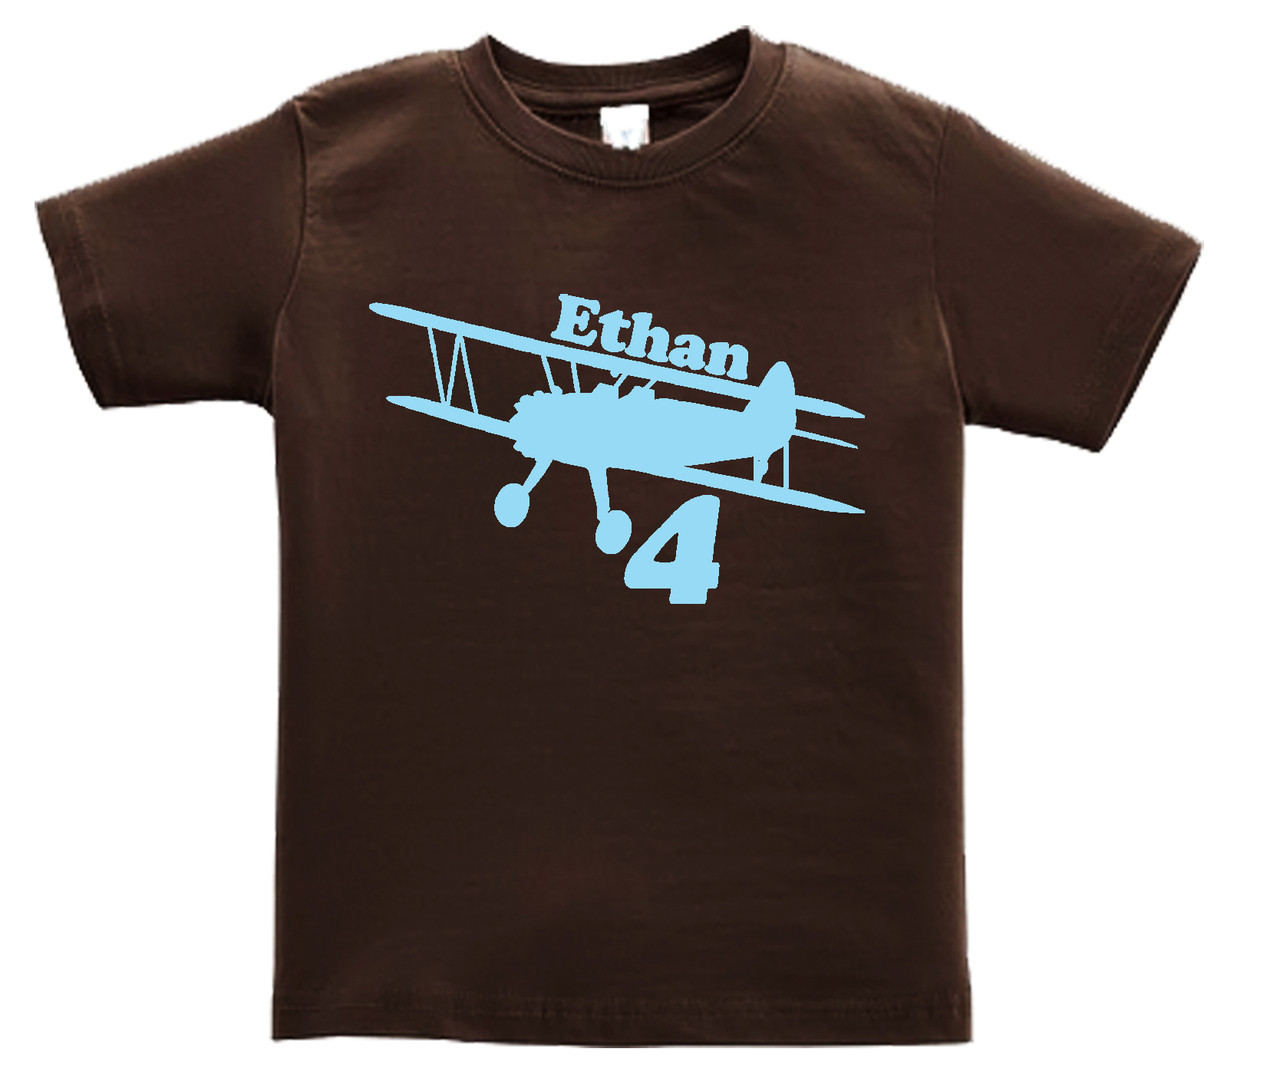 airplane biplane tshirt lightblue on brown shirt